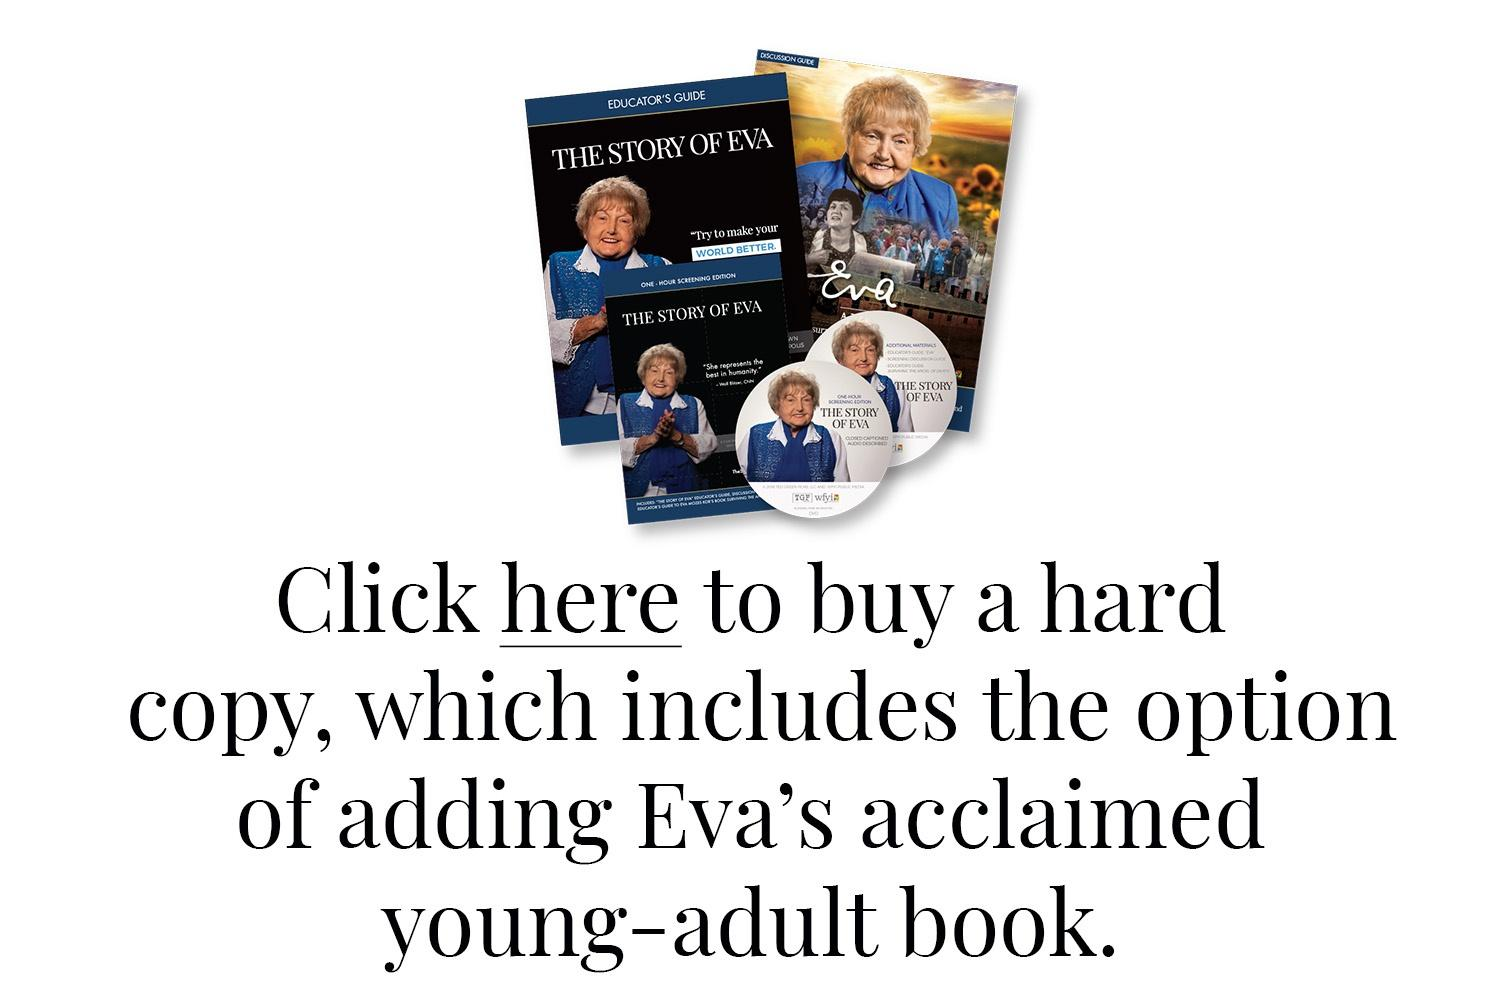 Click here to buy a hard copy, which includes the option of adding Eva's acclaimed young-adult book.